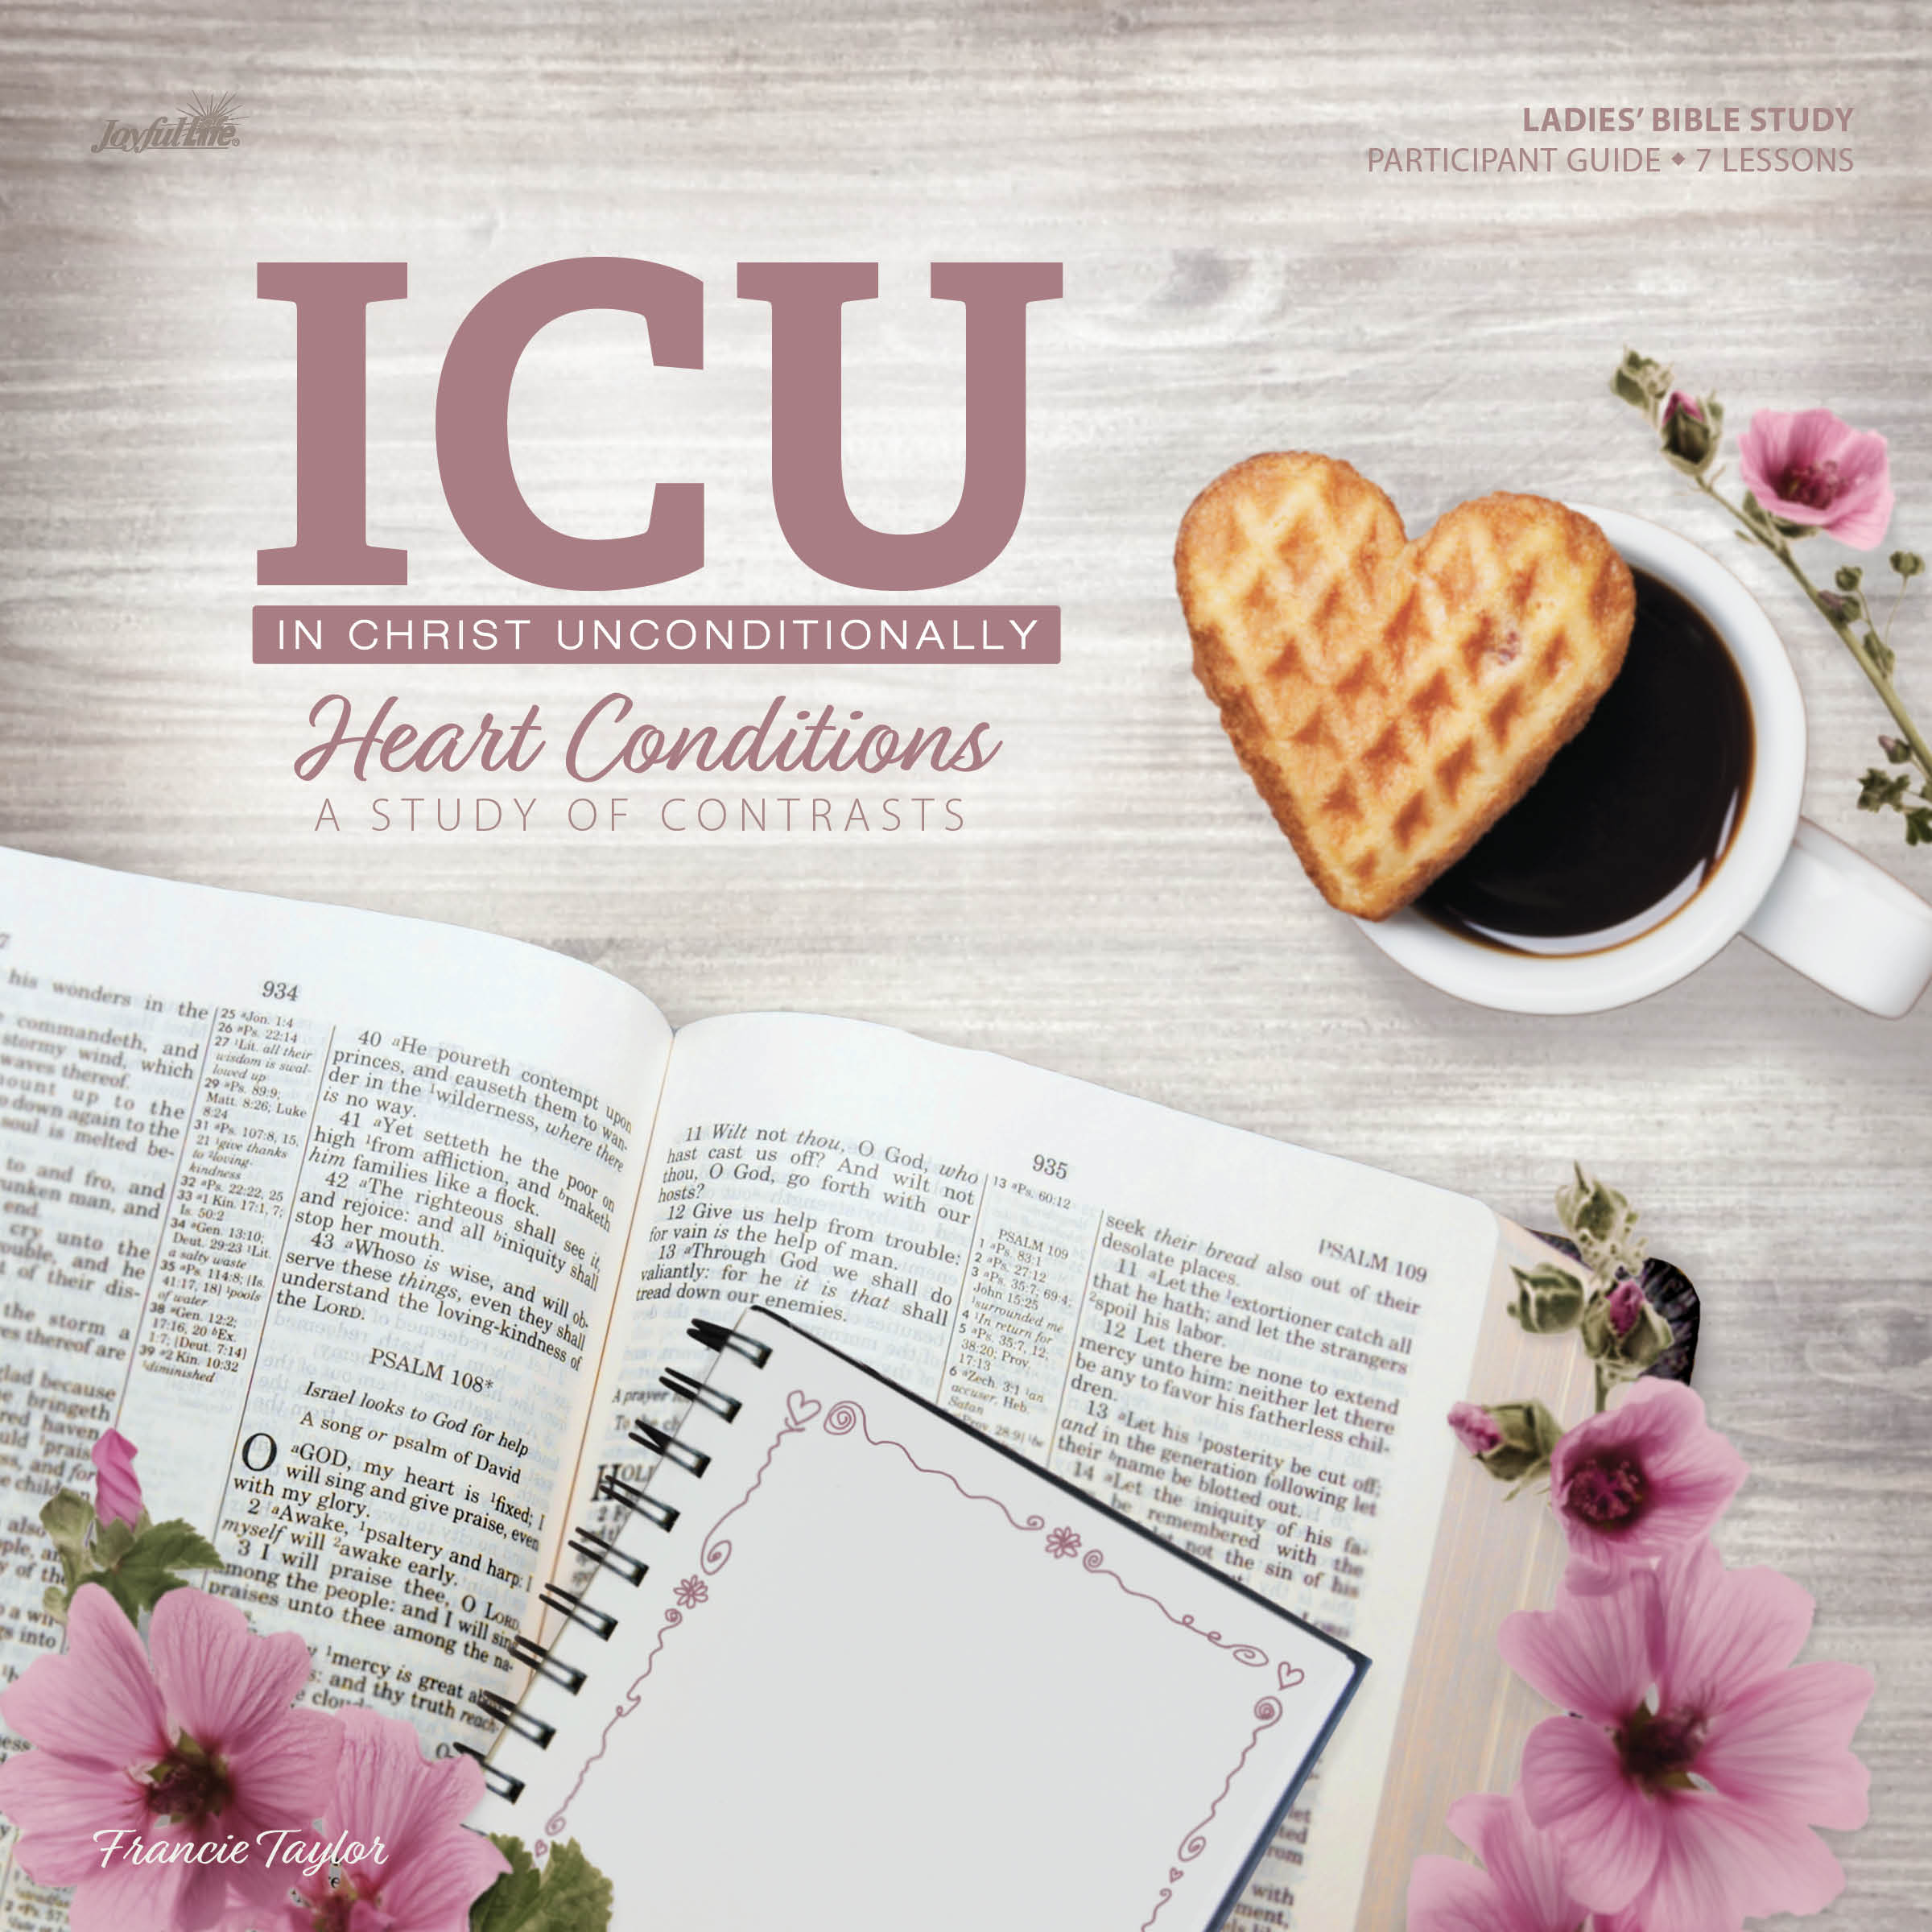 In Christ Unconditionally (ICU): Heart Conditions A Study of Contrast Participant Guide